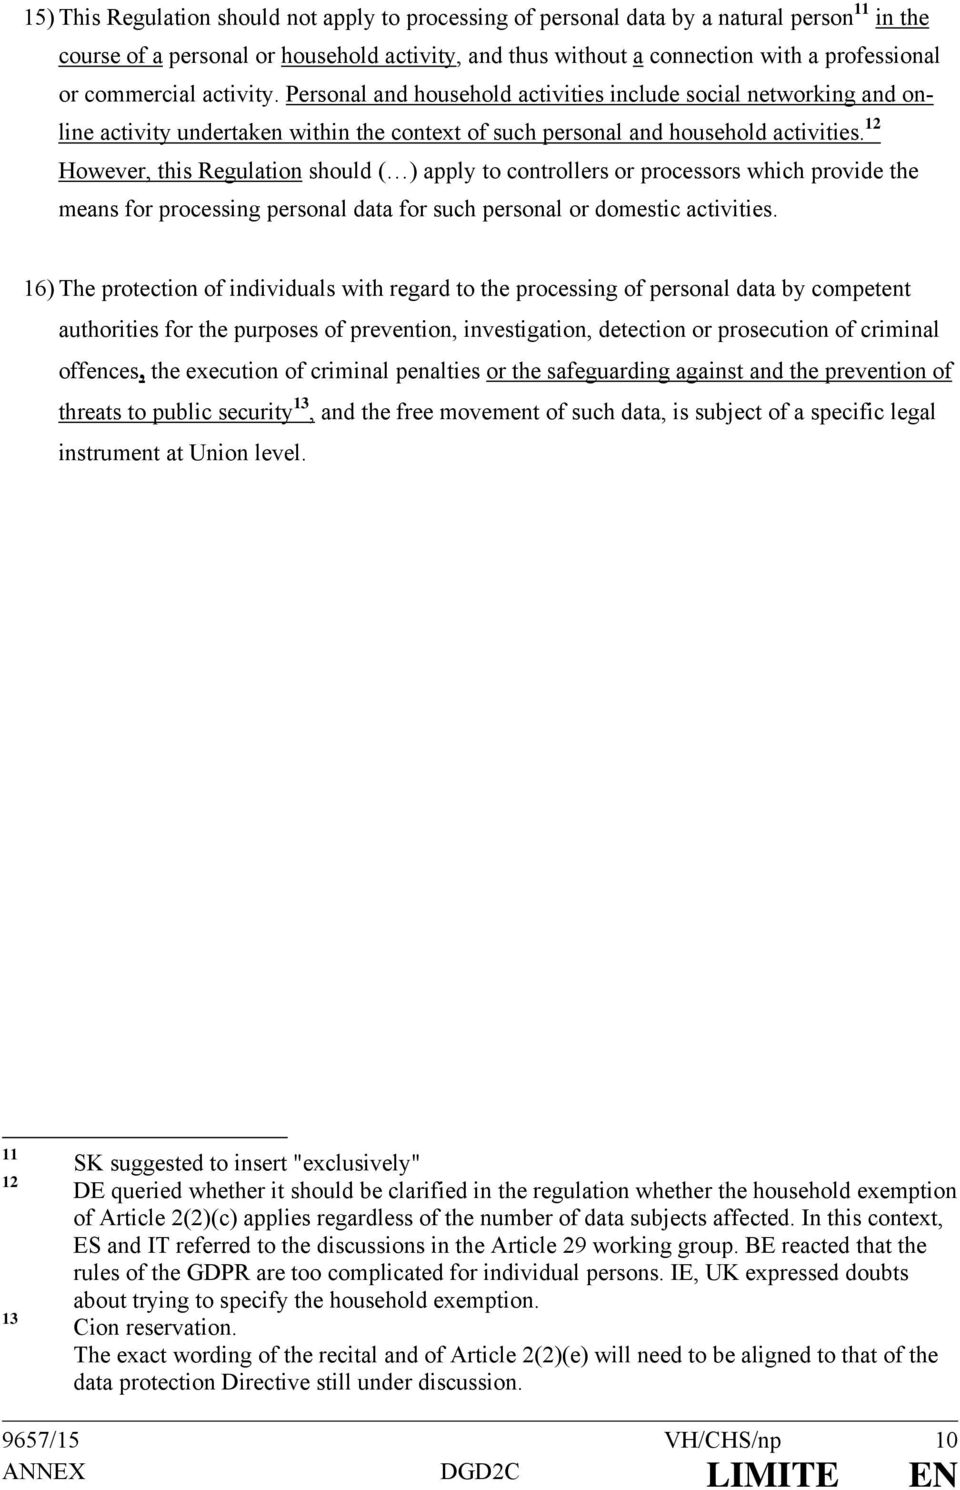 12 However, this Regulation should ( ) apply to controllers or processors which provide the means for processing personal data for such personal or domestic activities.